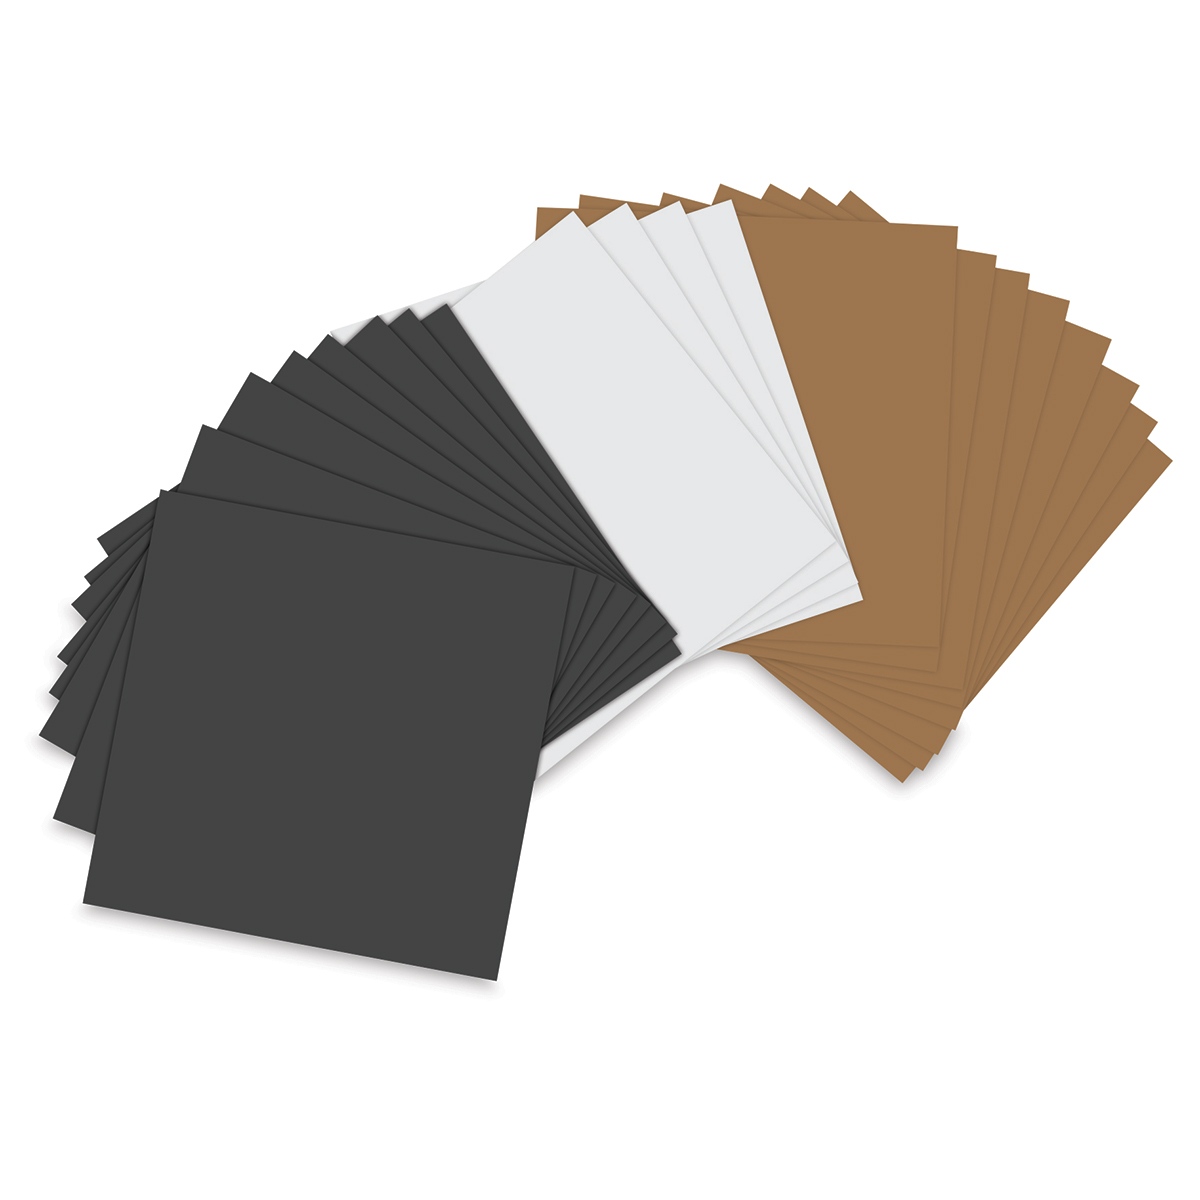 Sizzix Paper Leather Sheets - Assorted Basics, Pkg of 20, 6 x 6